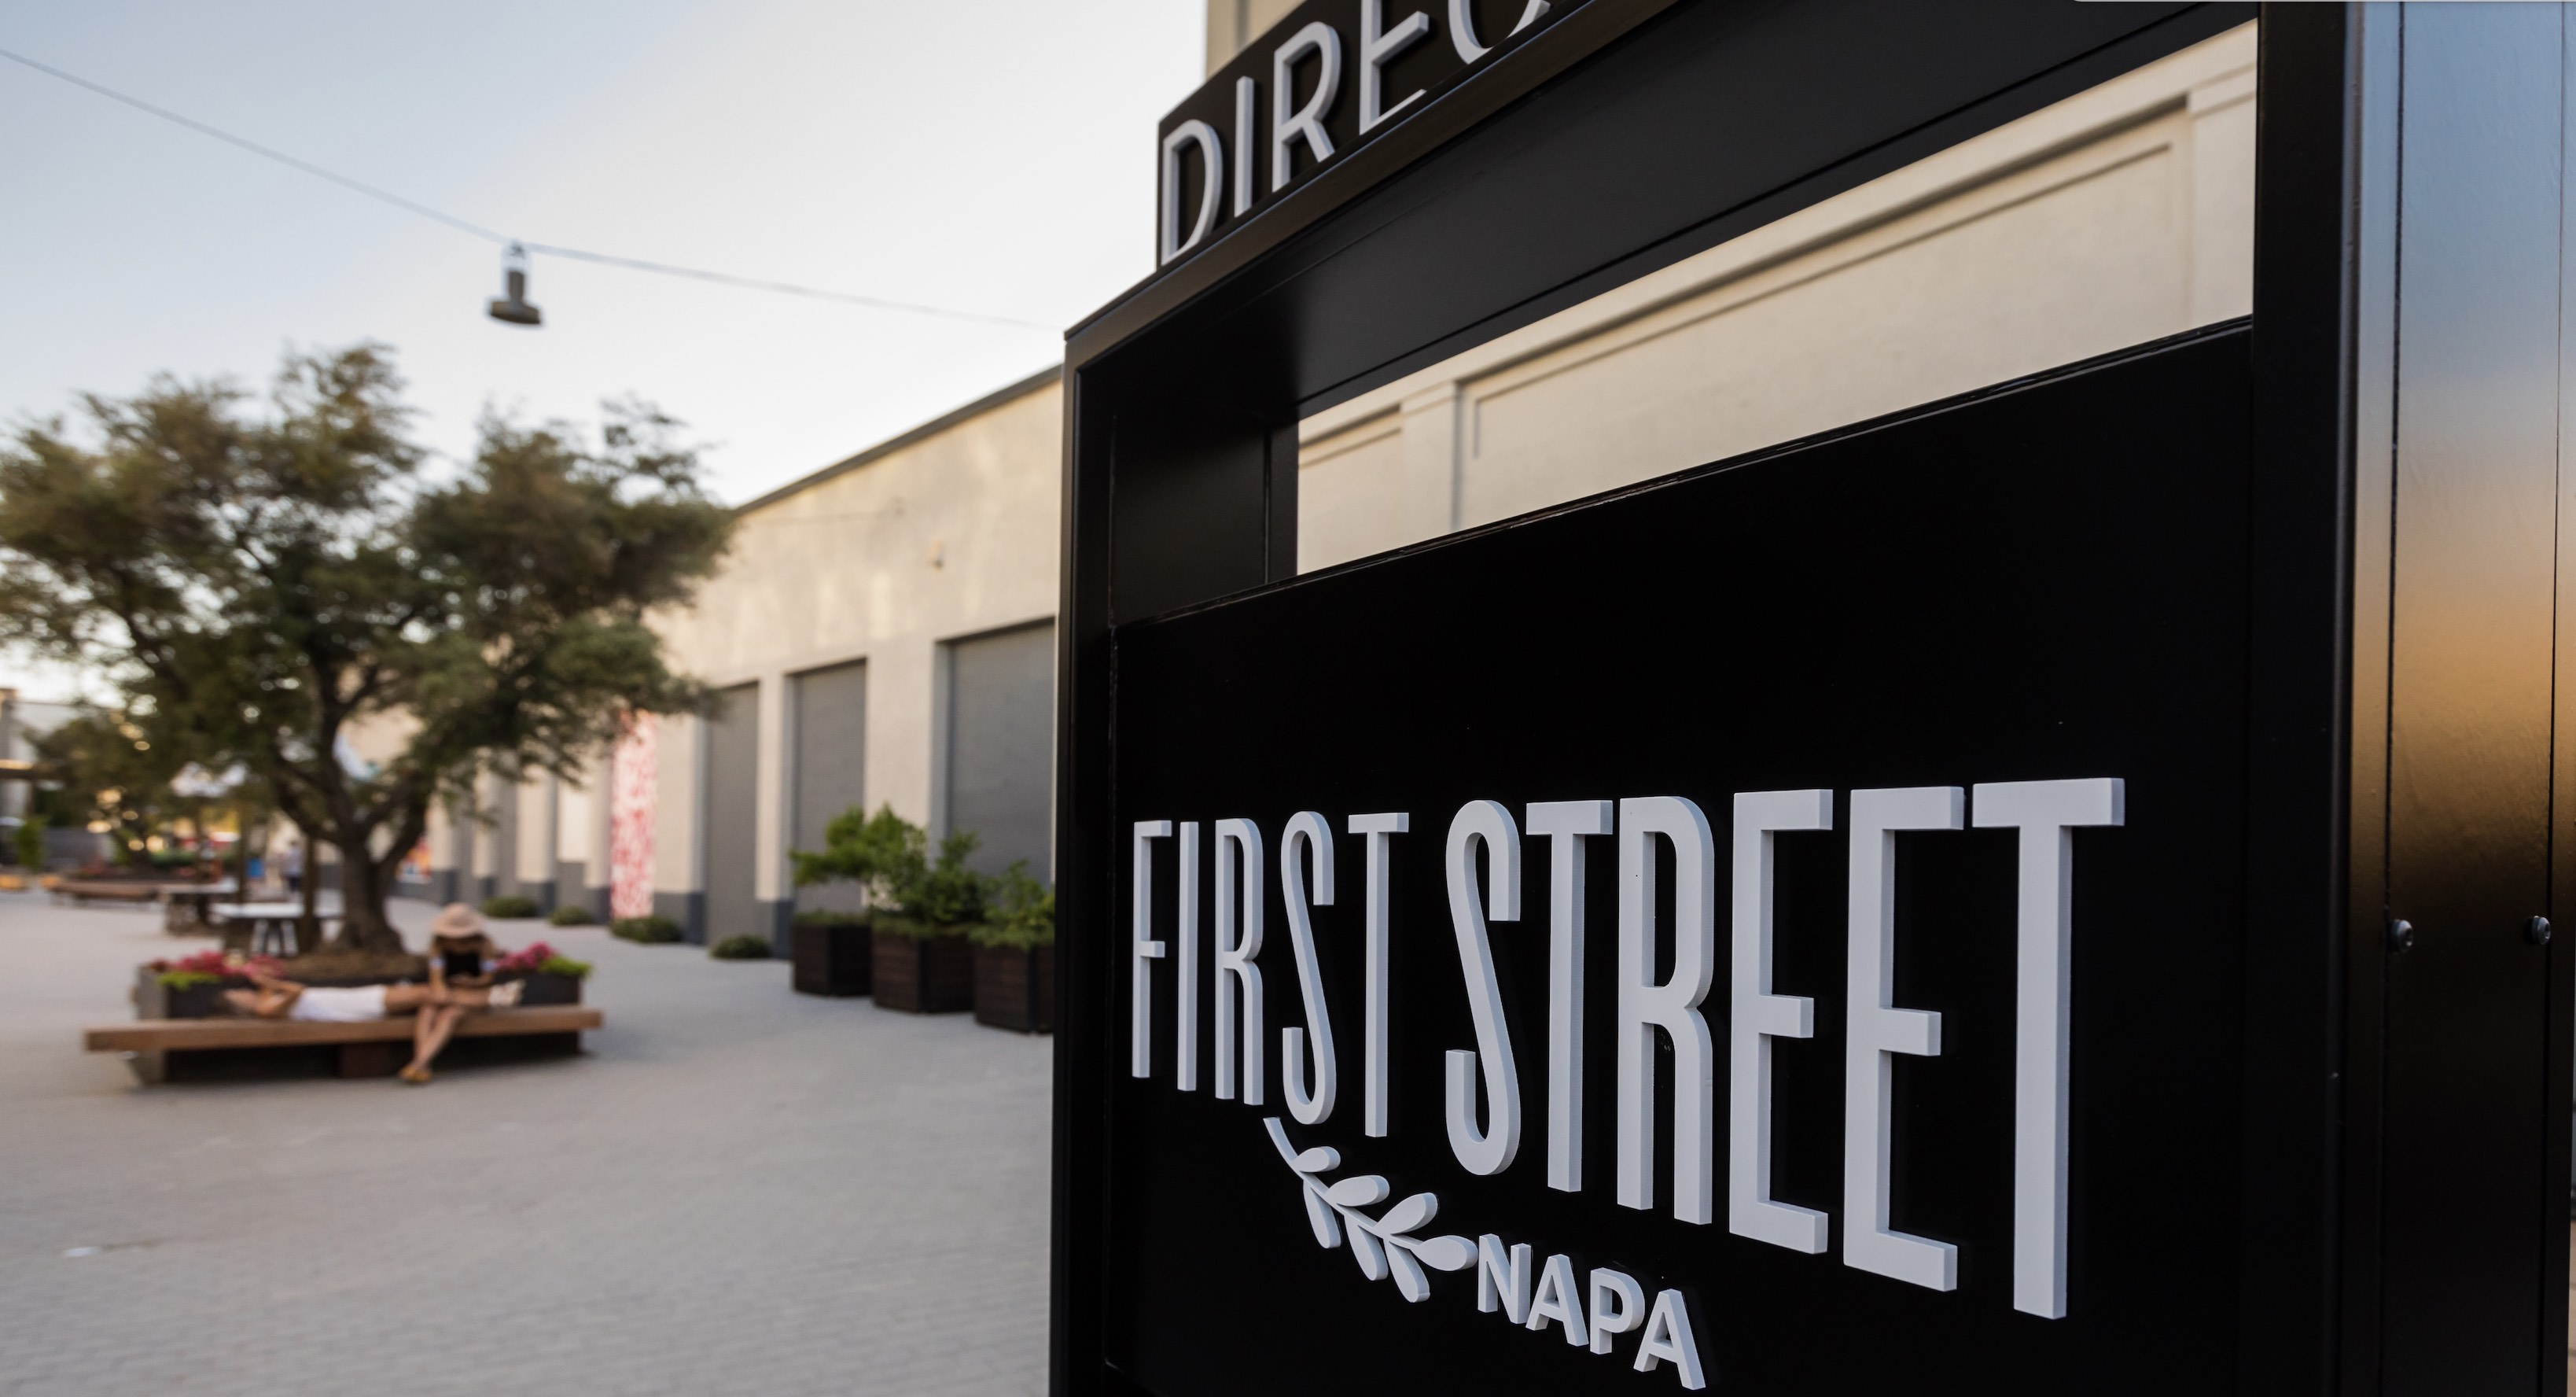 Kitchen Door Moving To New Downtown Napa Location